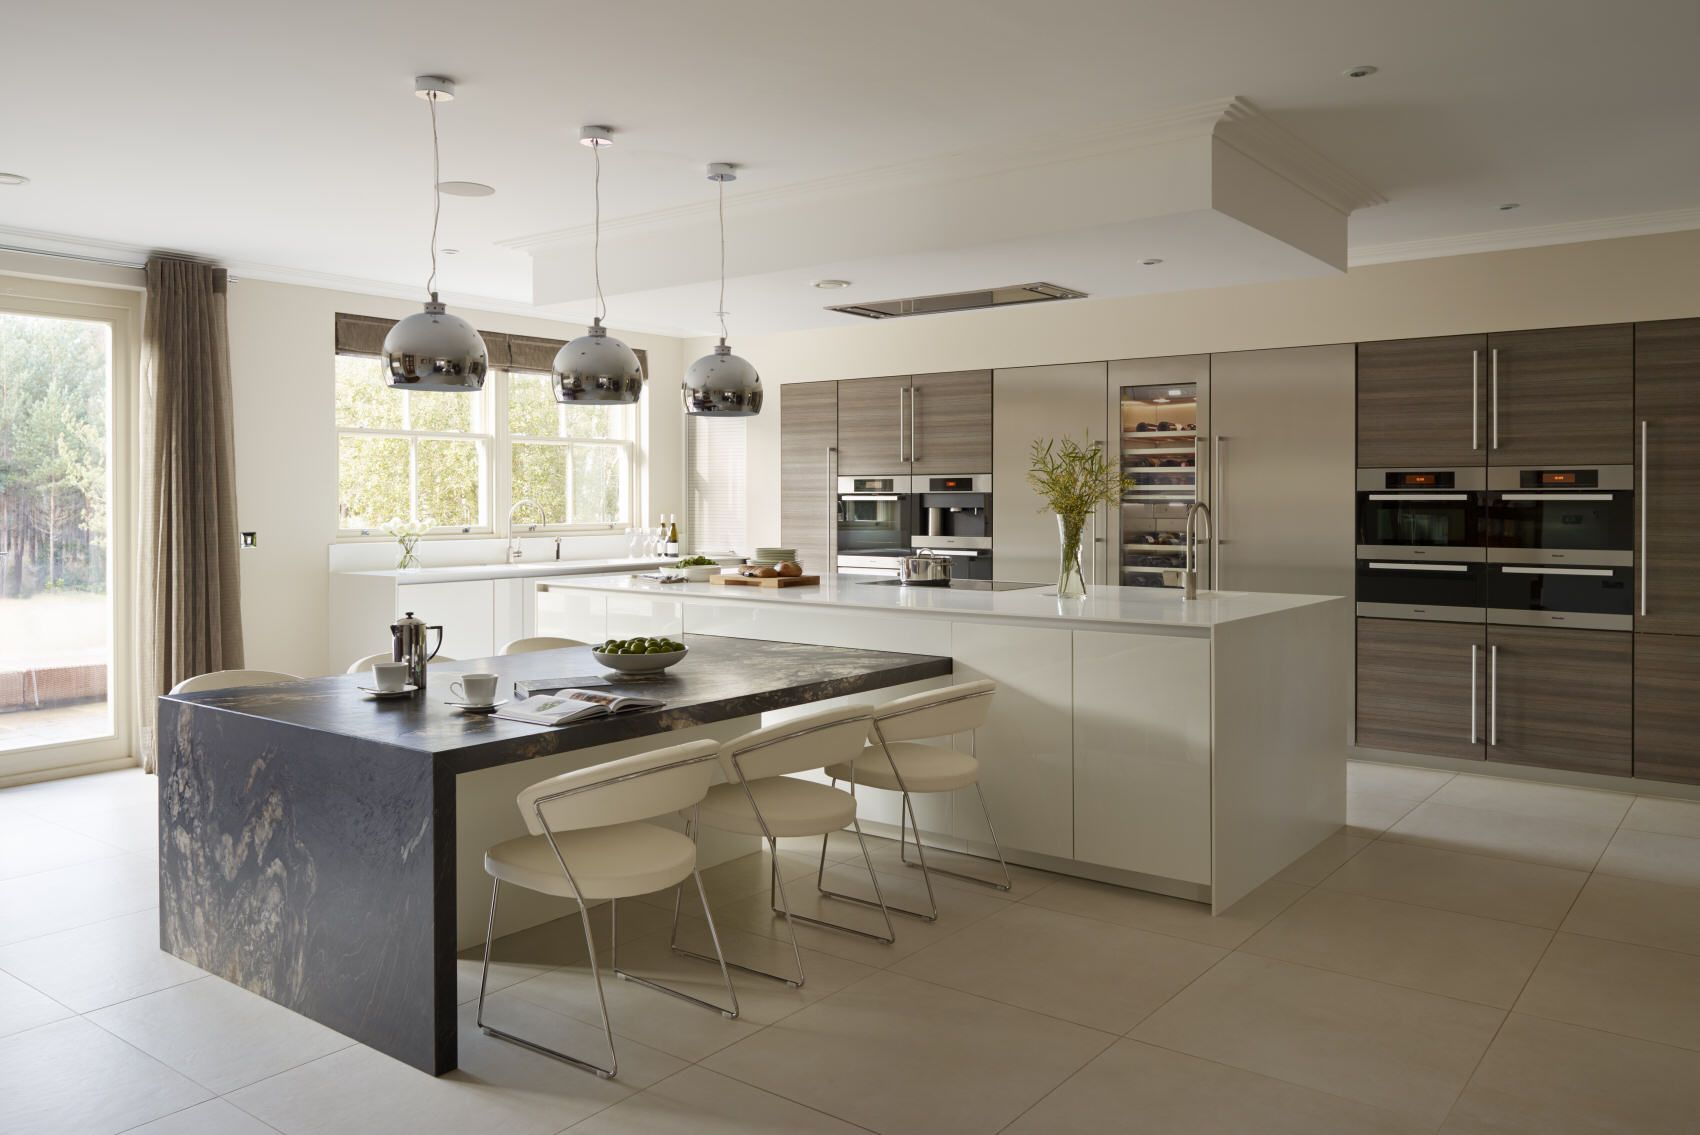 Luxury Designer Kitchens Nicholas Anthony Kitchens To